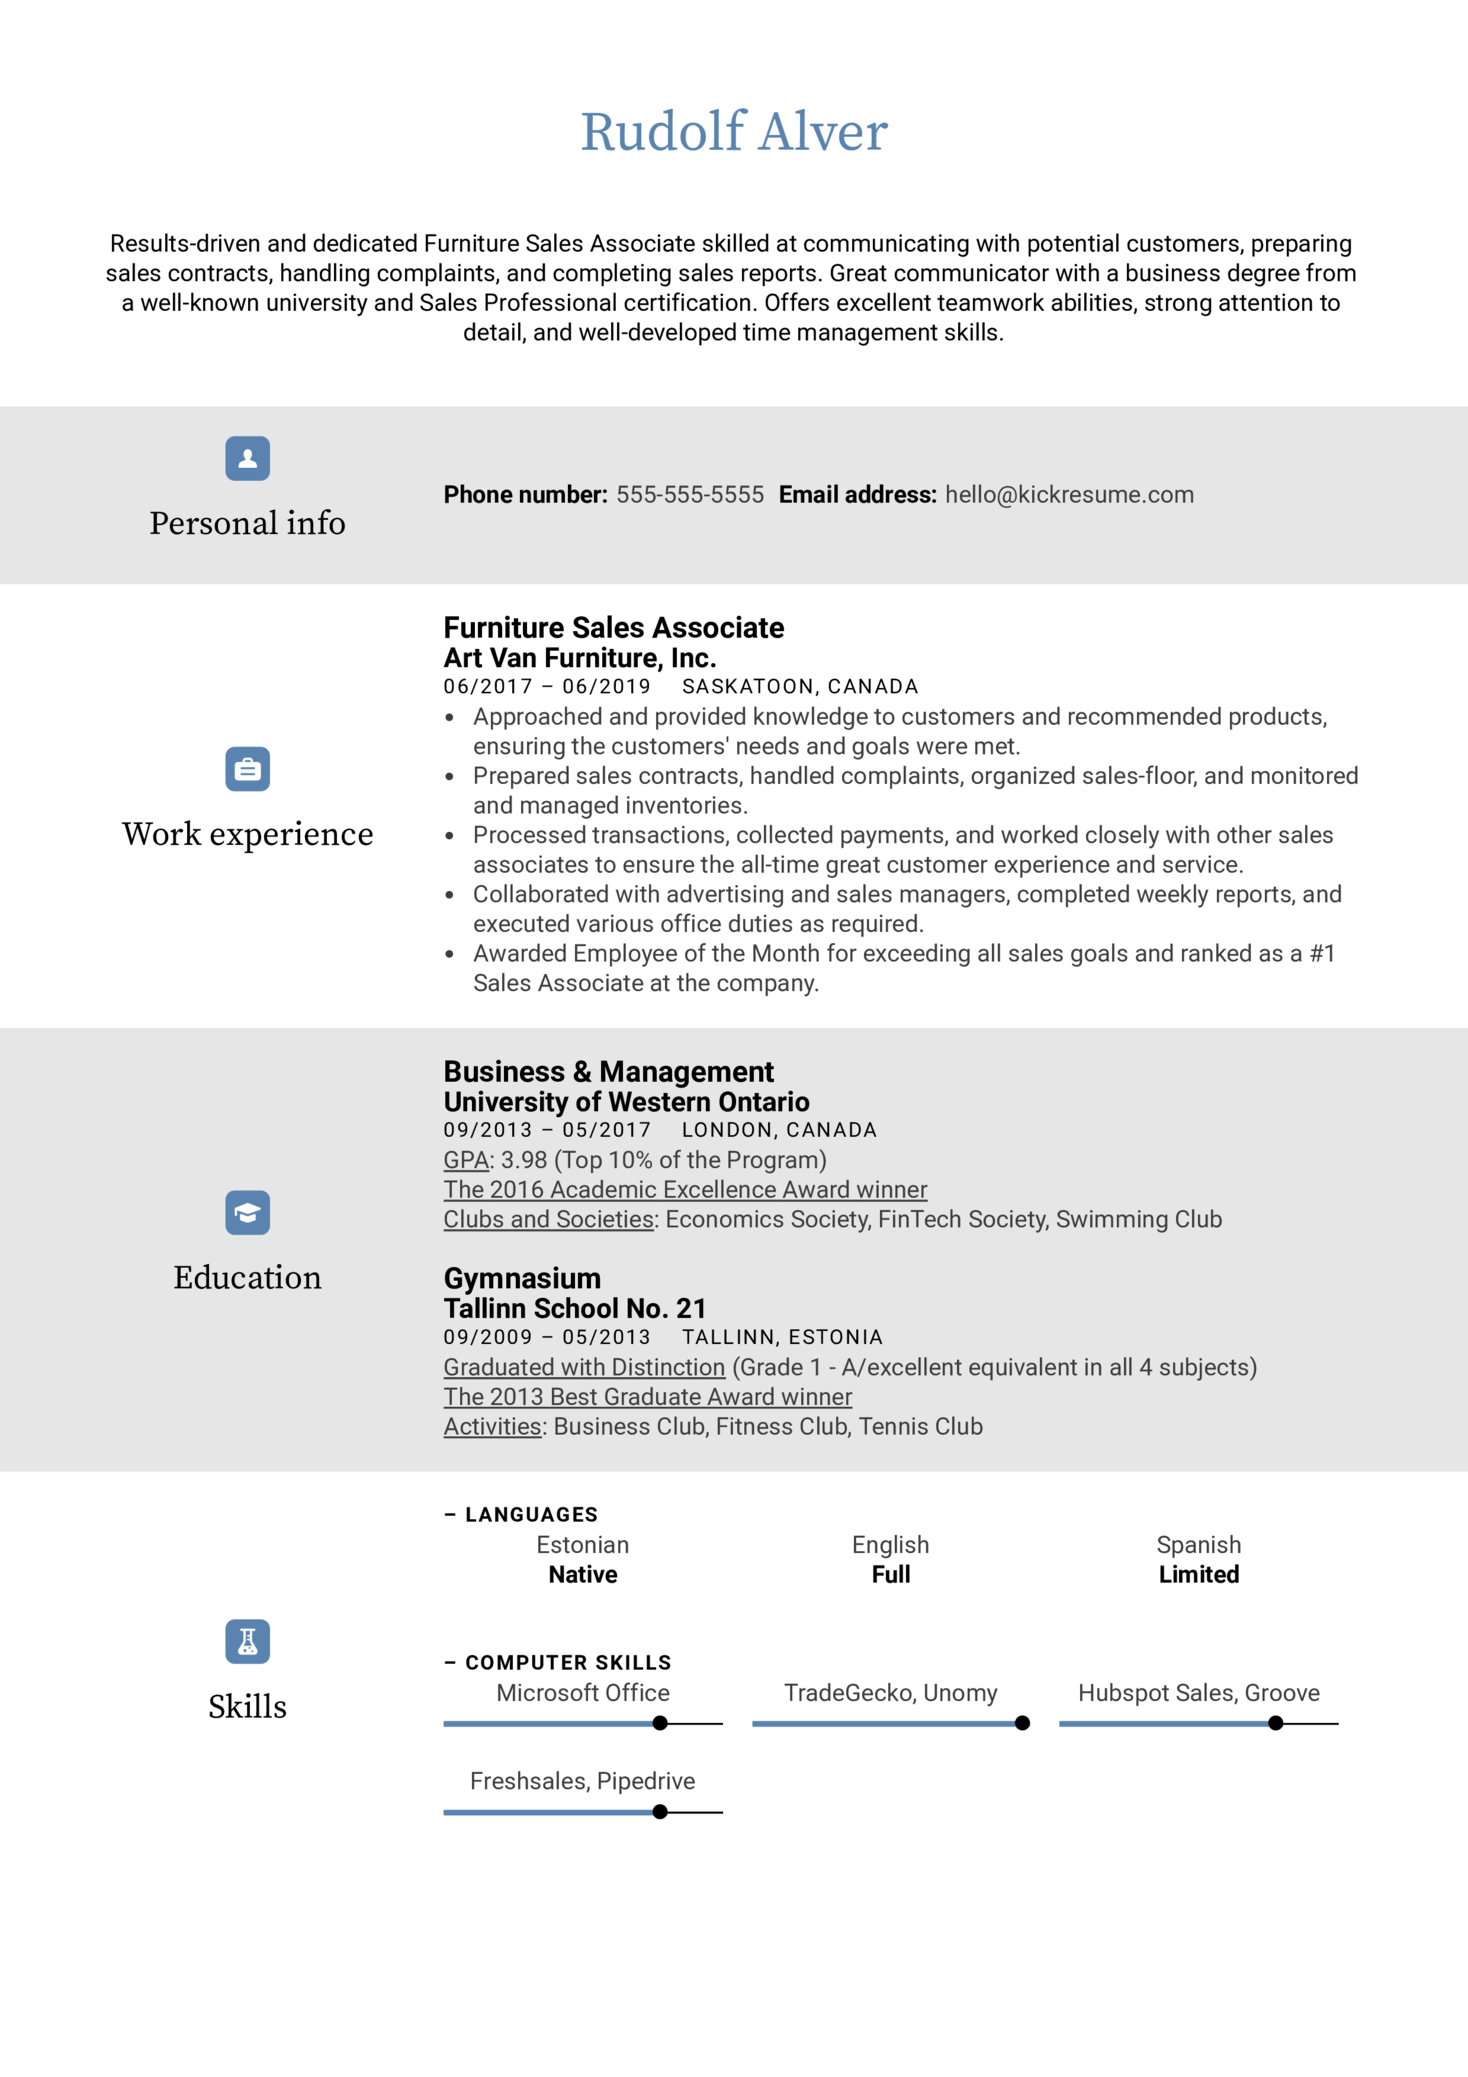 Furniture Sales Associate Resume Sample (Part 1)